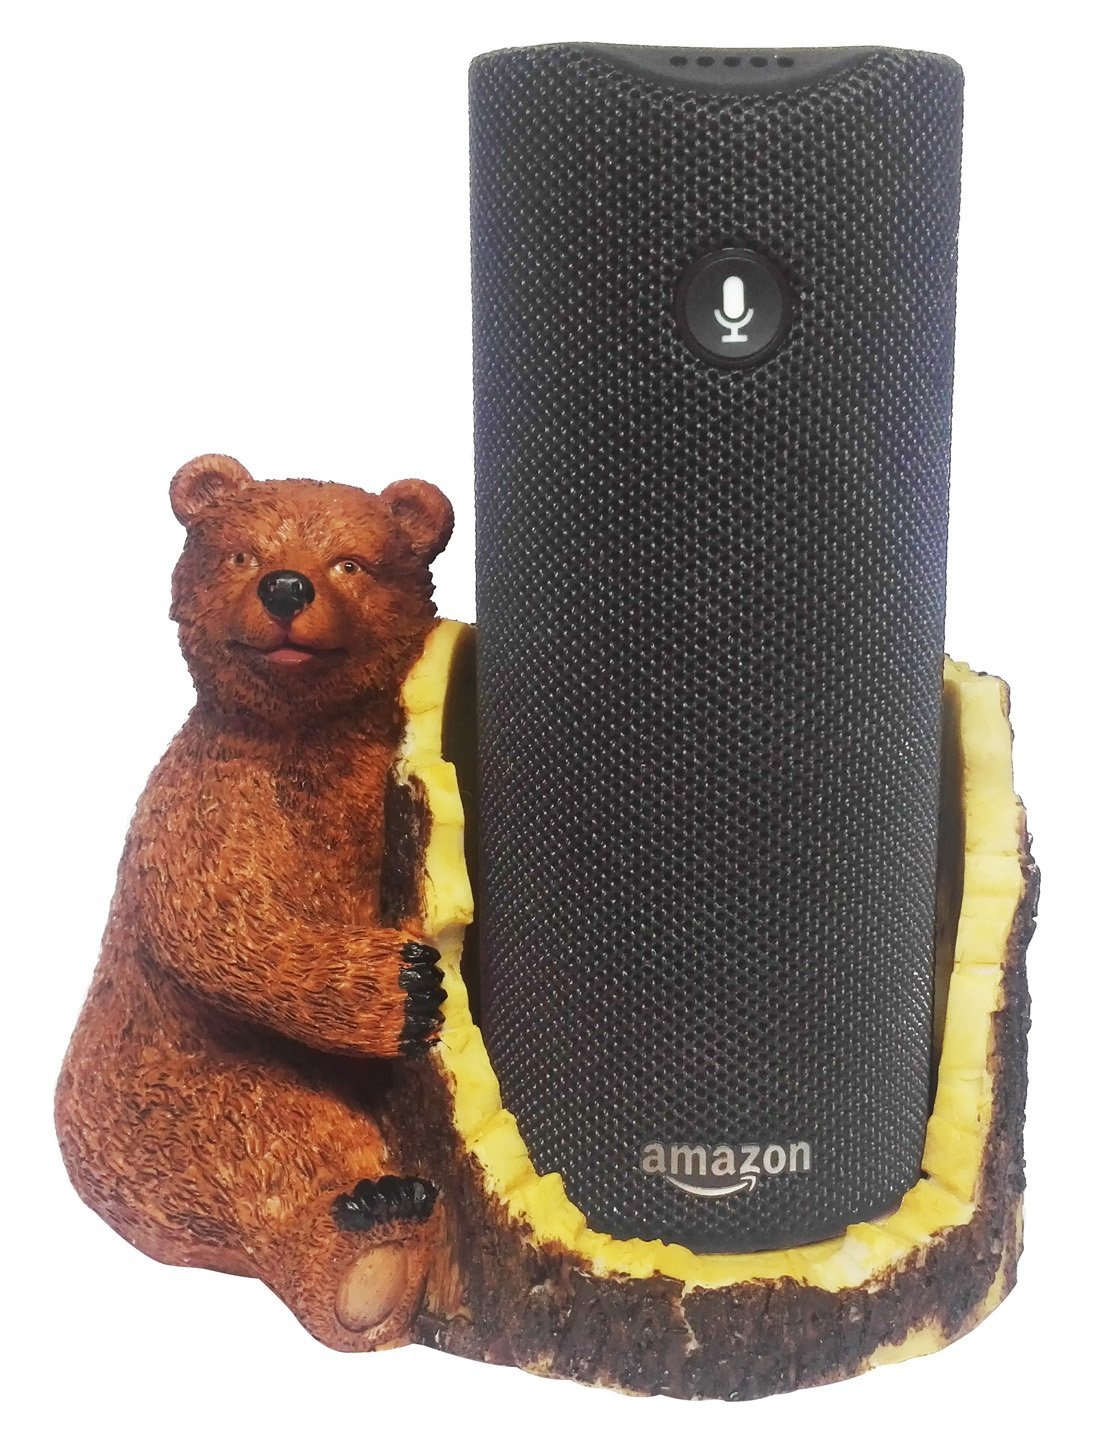 FitSand(TM) Brown Bear Crafted Statue Speaker Holder Stand Guard Station for Amazon Tap Bluetooth Speaker